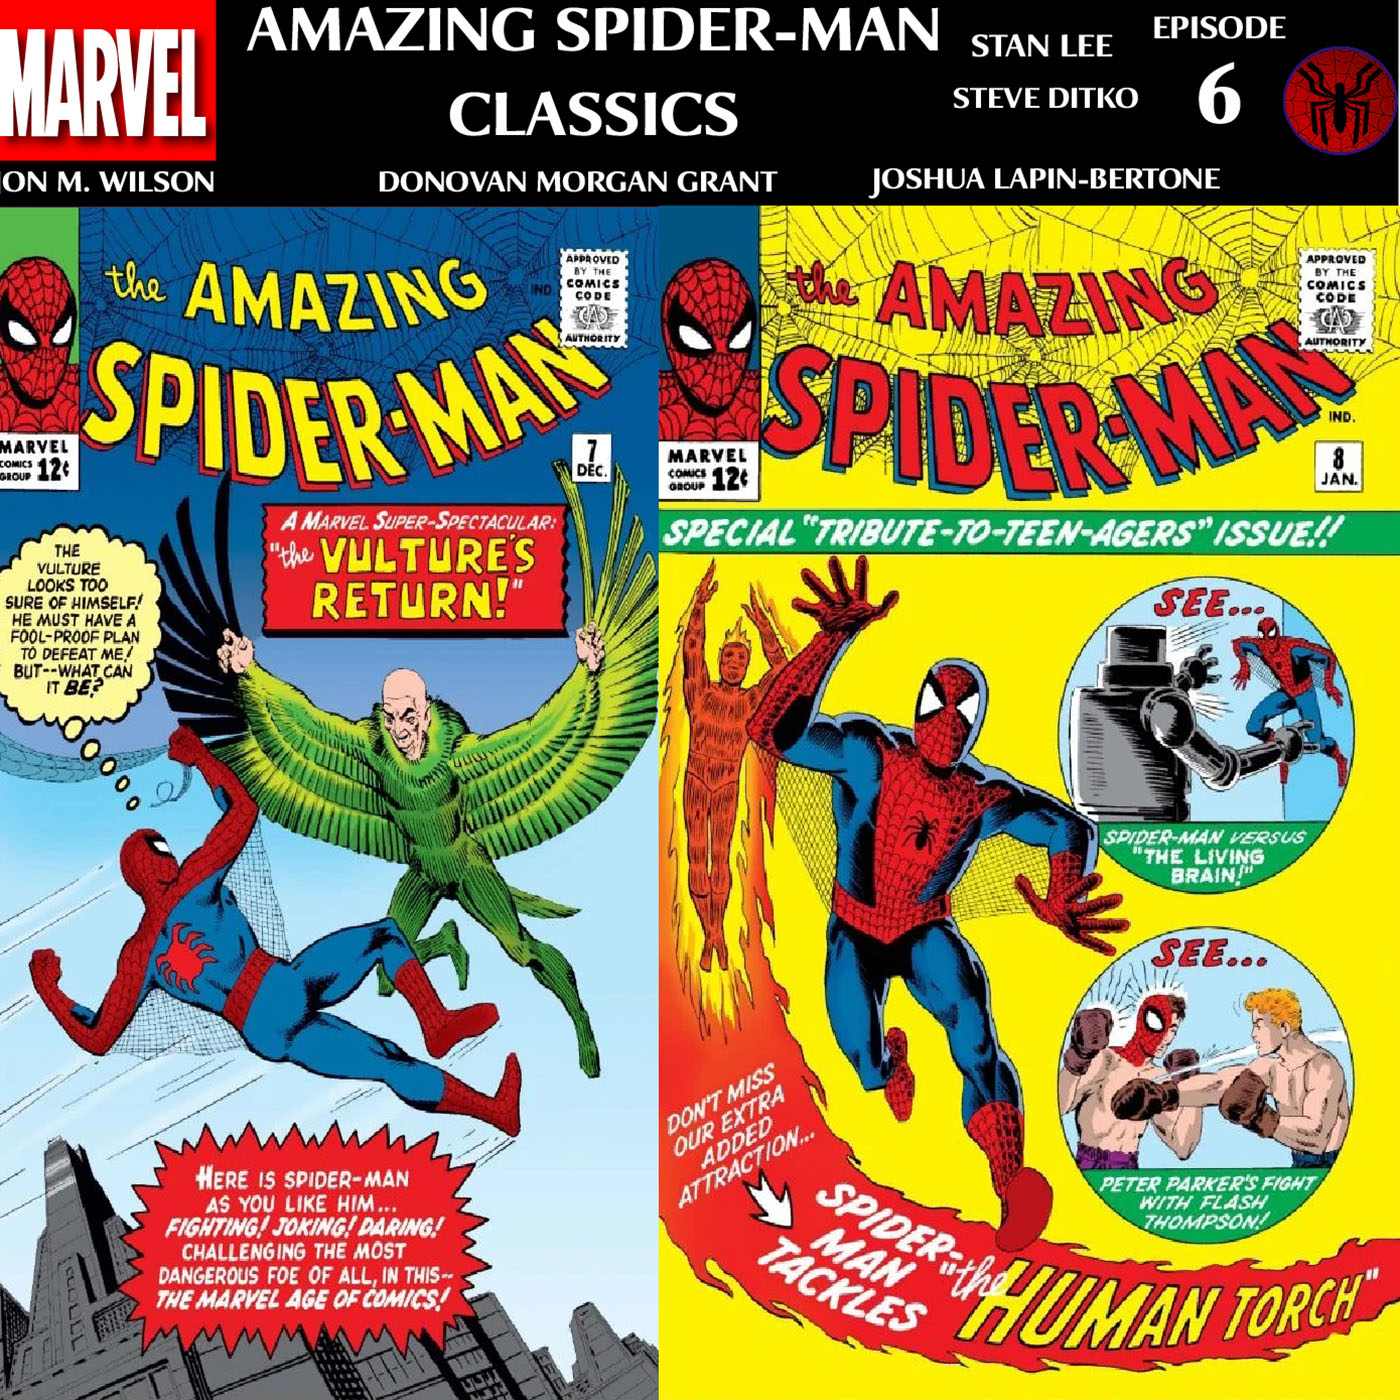 ASM Classics Episode 6: ASM 7 & 8